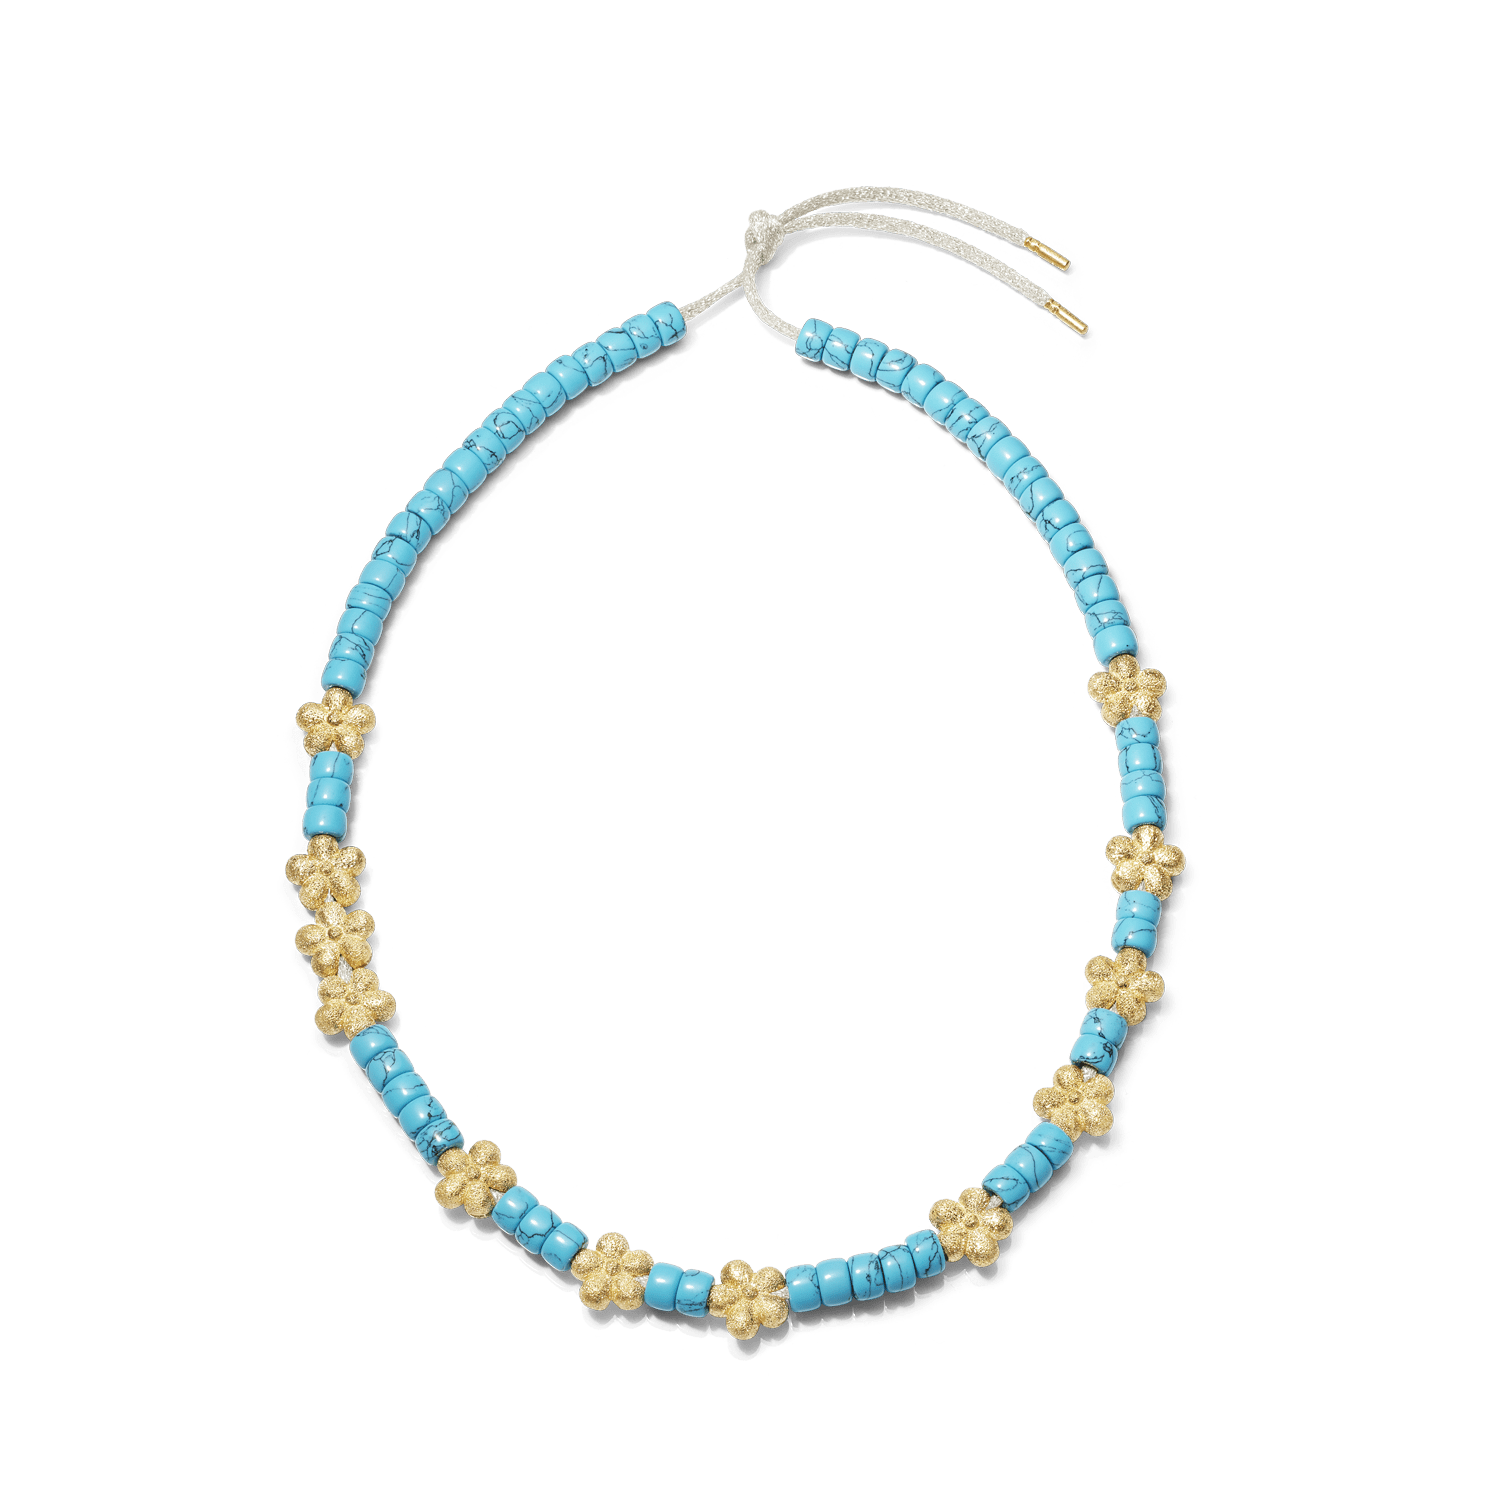 Carolina Bucci Forte Beads Necklace with Flower Beads